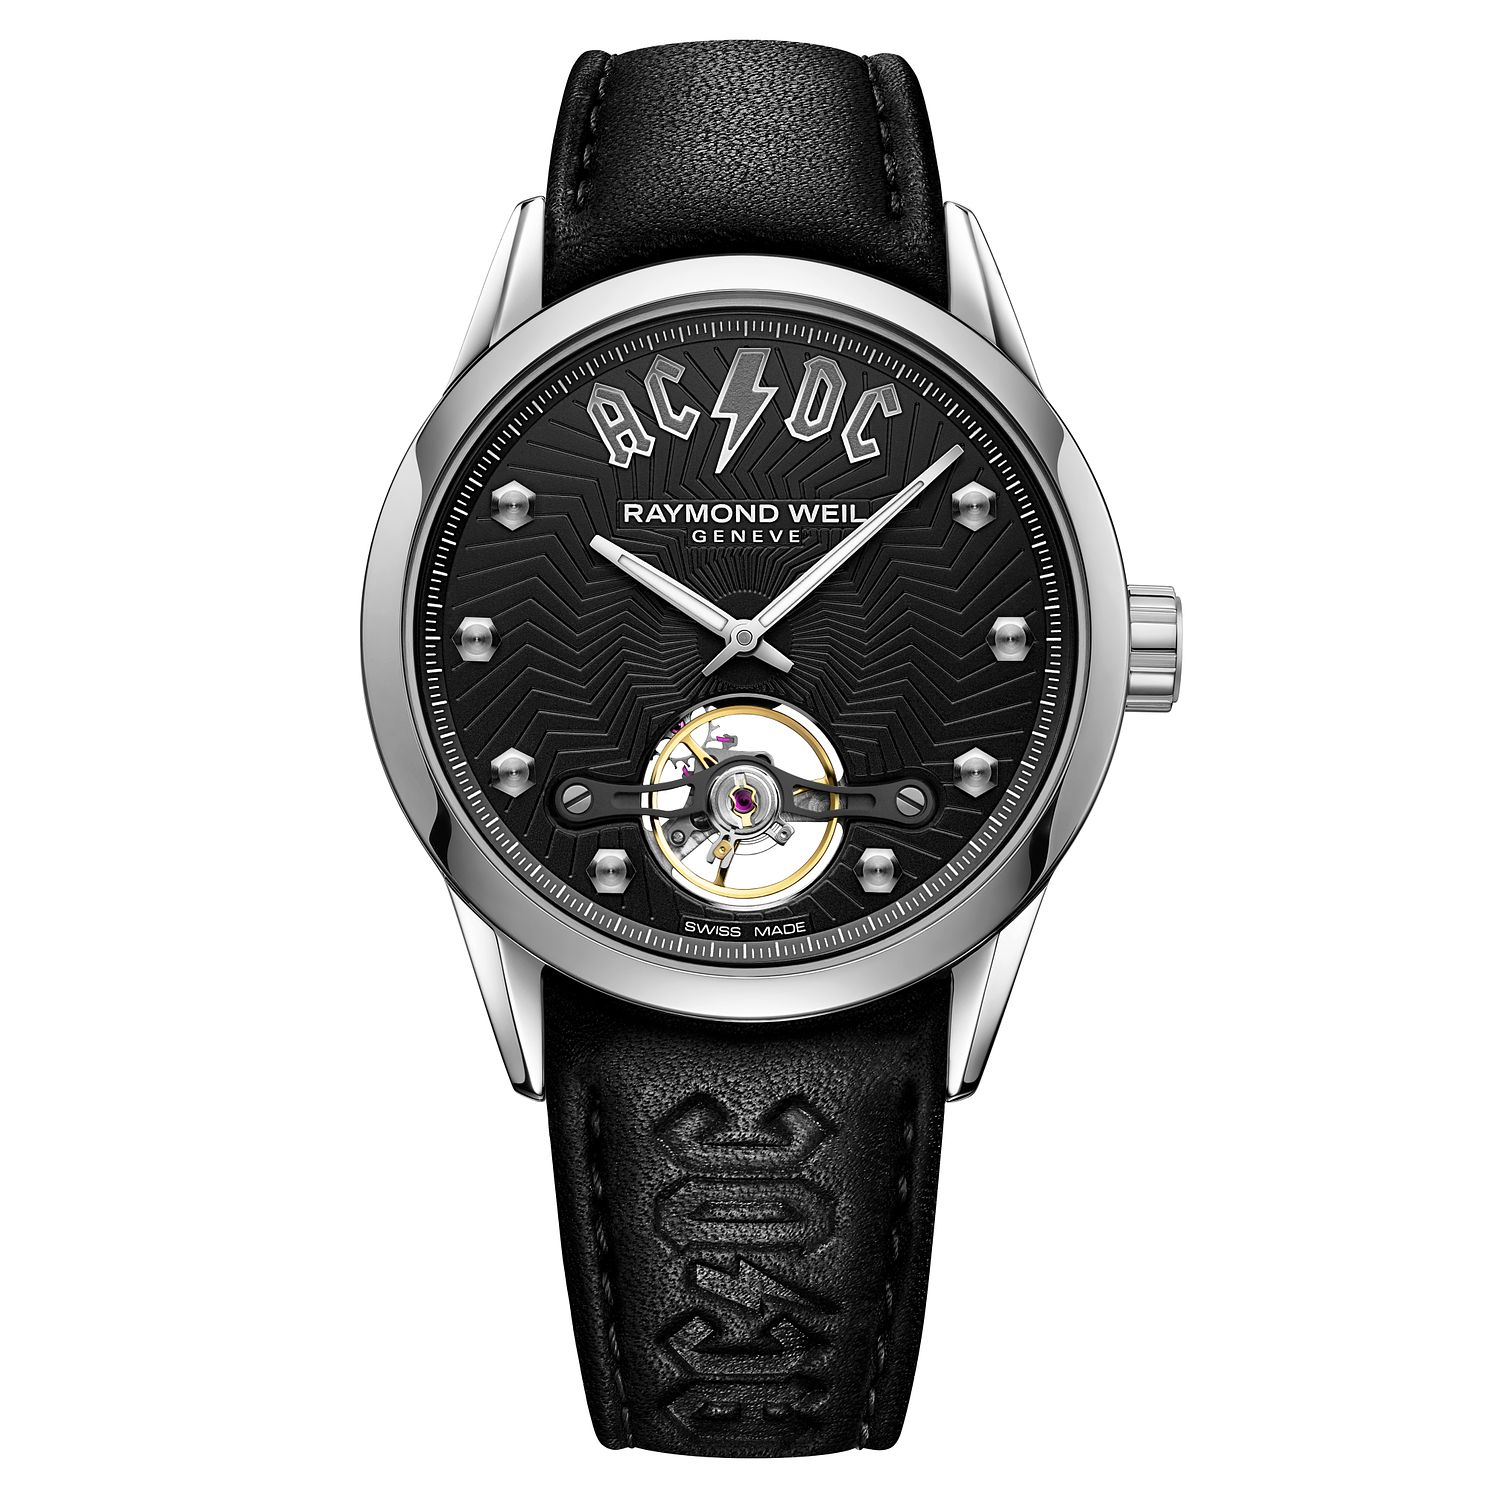 Raymond Weil Freelancer AC/DC Black Leather Strap Watch - Product number 9302271